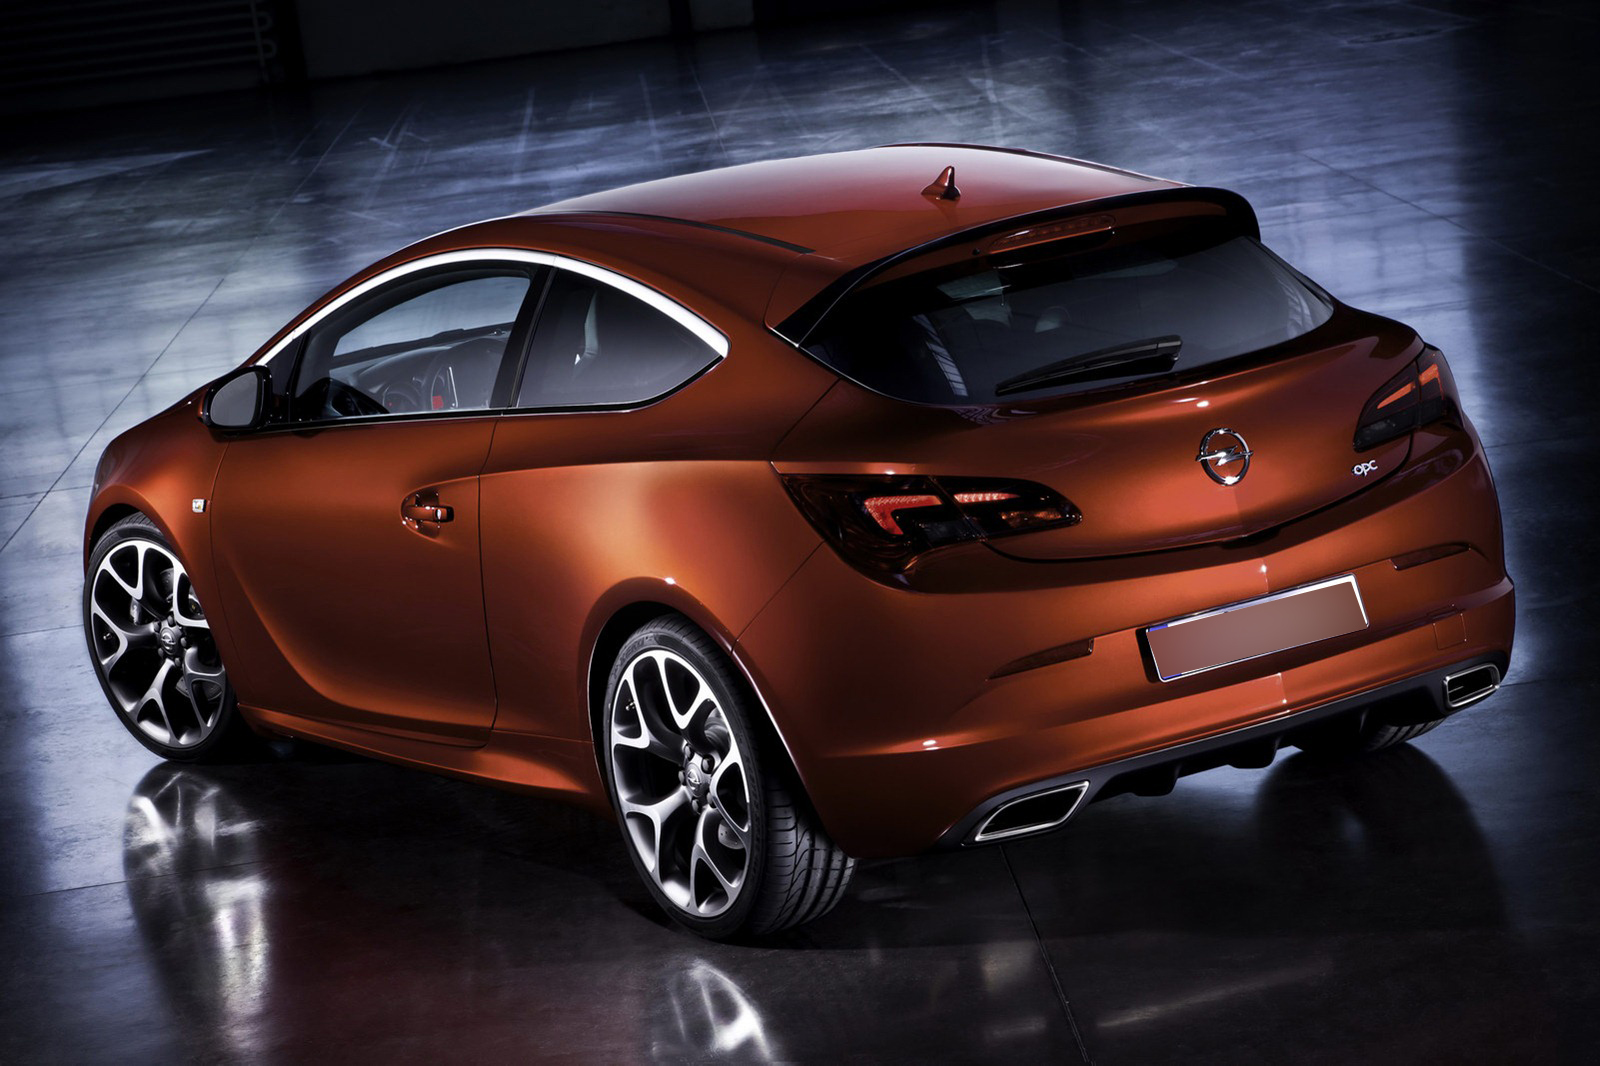 Opel Astra 2015 release date & price -